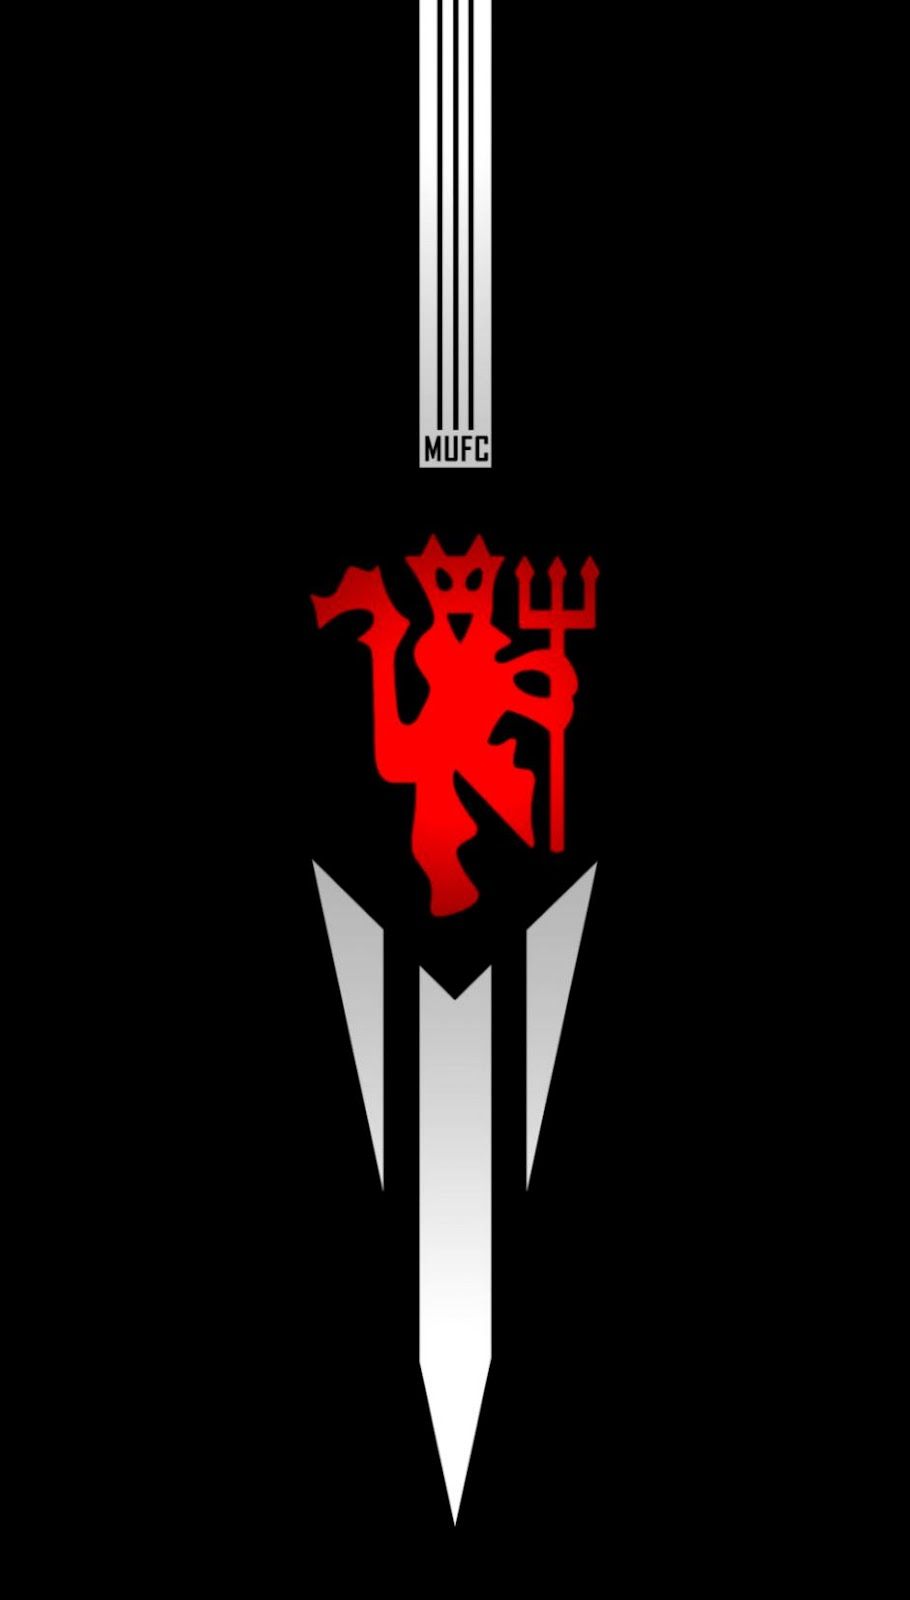 Manchester United Wallpaper Hd Wallpapers Abstract